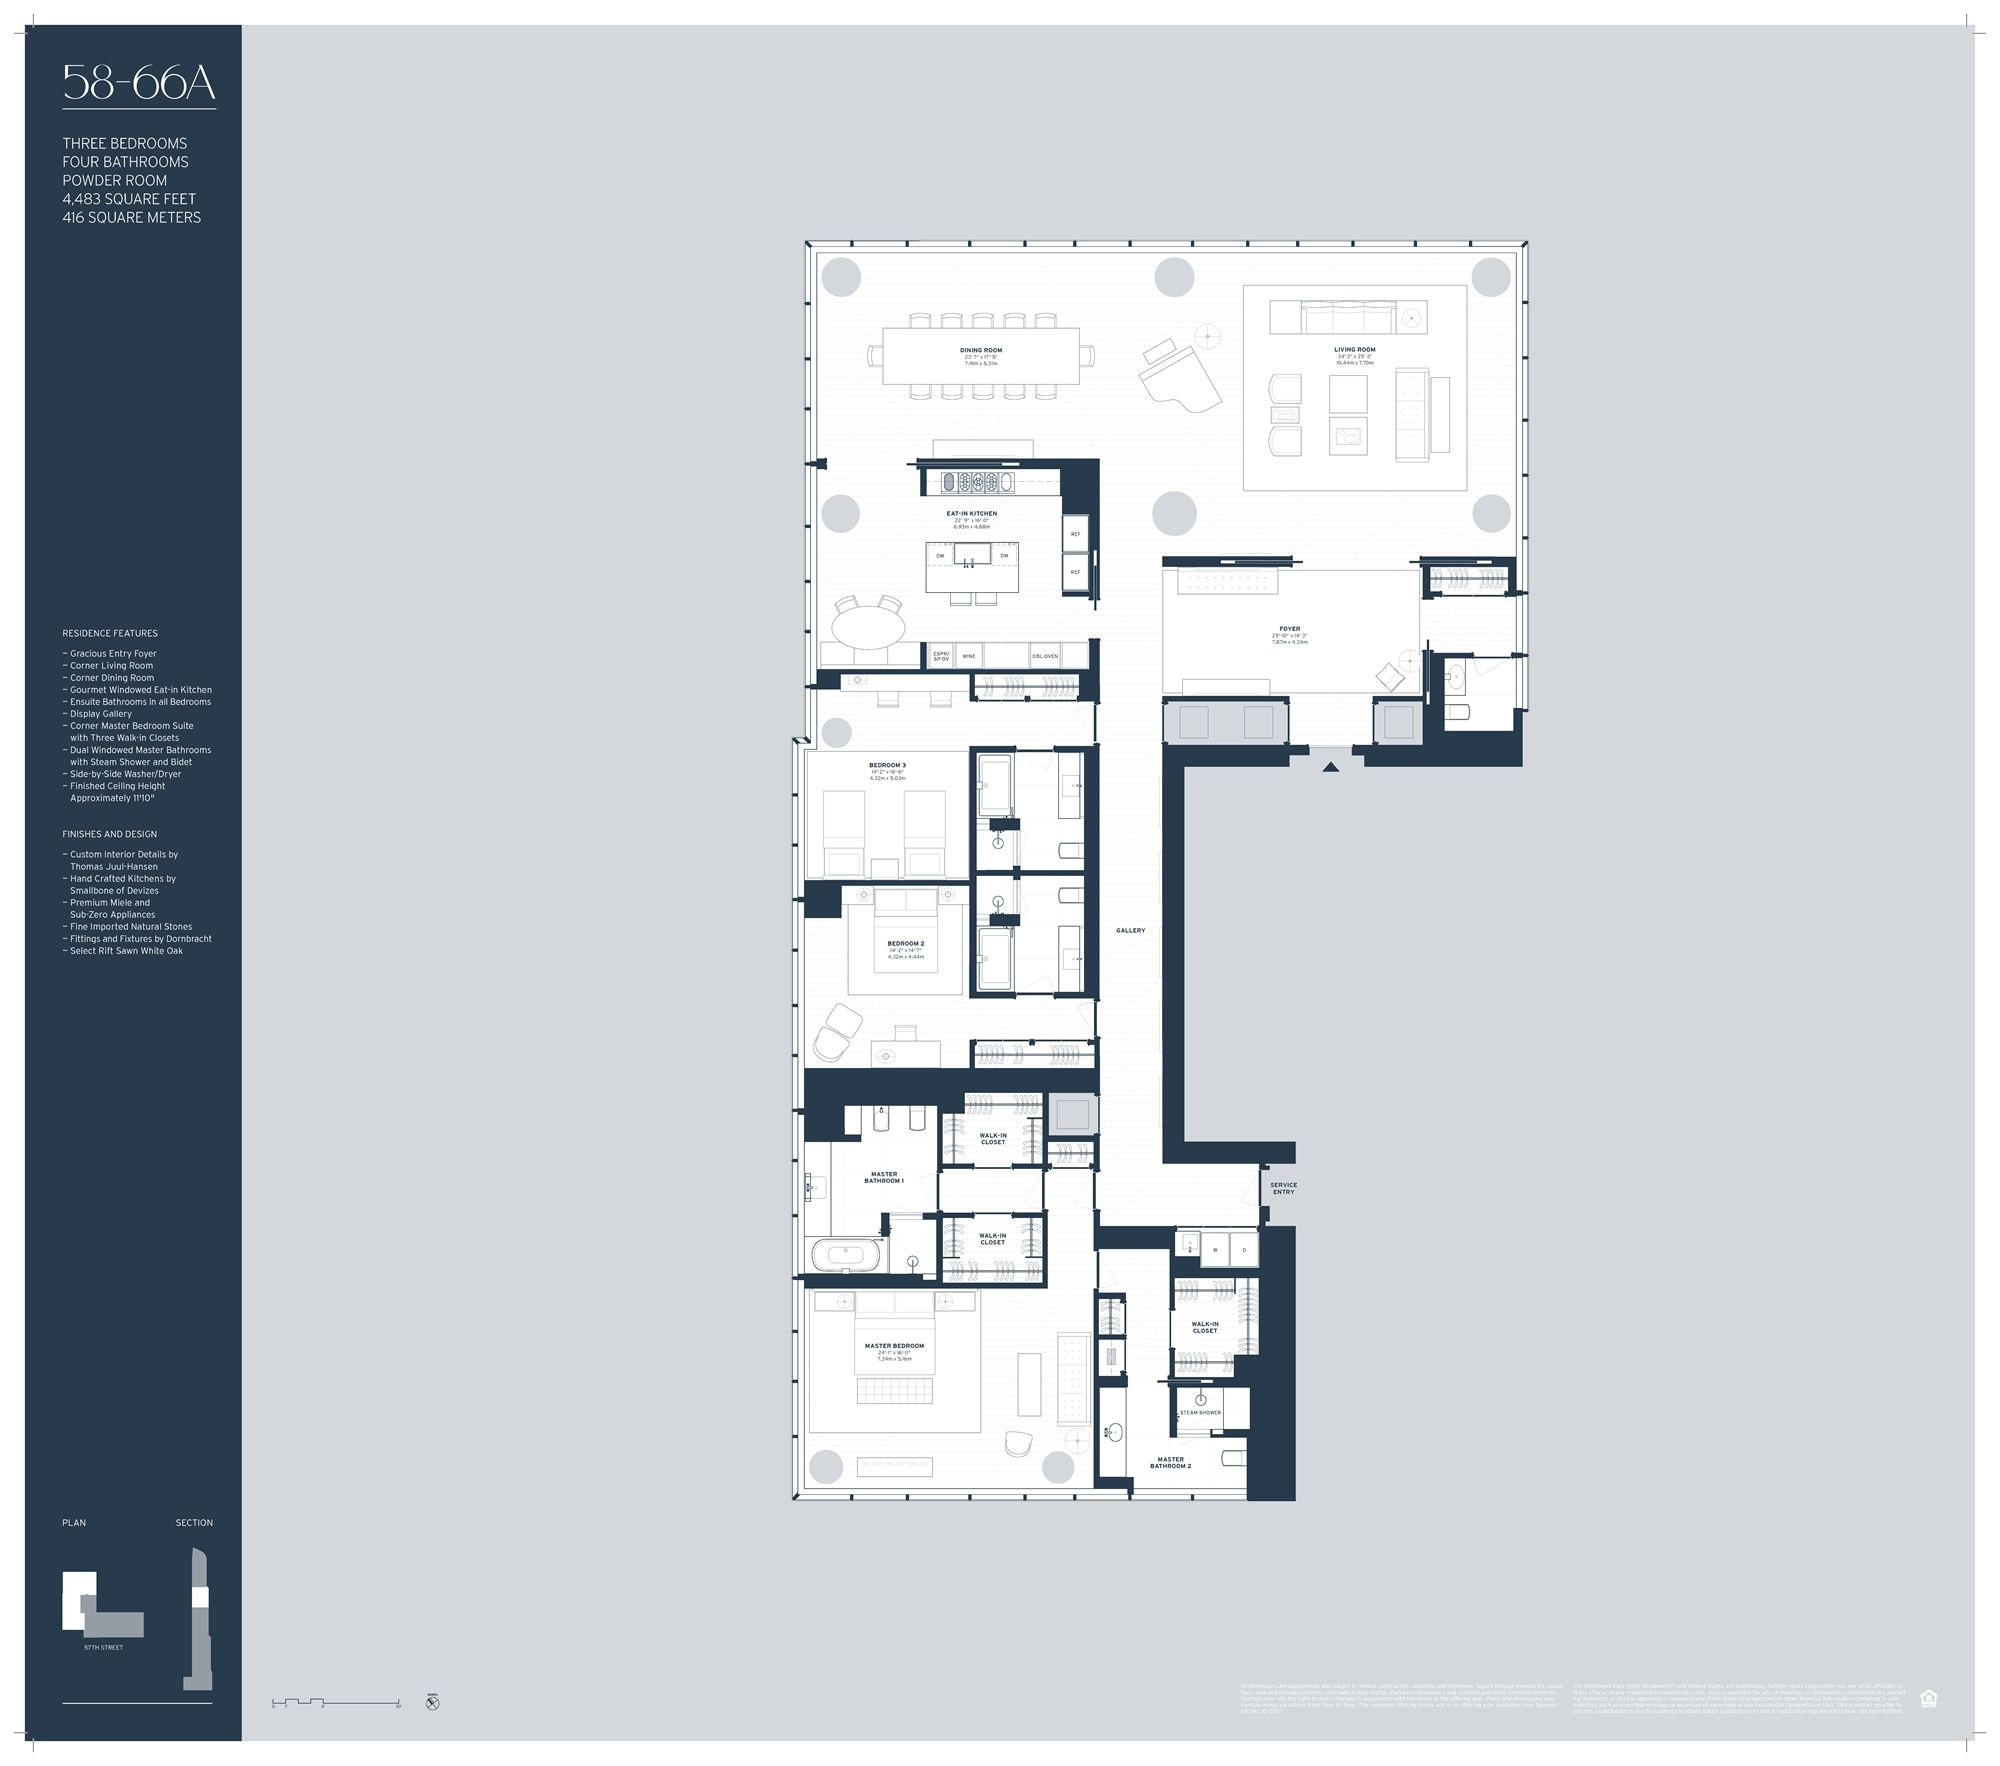 One57 Floor Plans 2012 05 29 03 40 46 58 66a 1 Png 2 000 215 1 766 Pixels